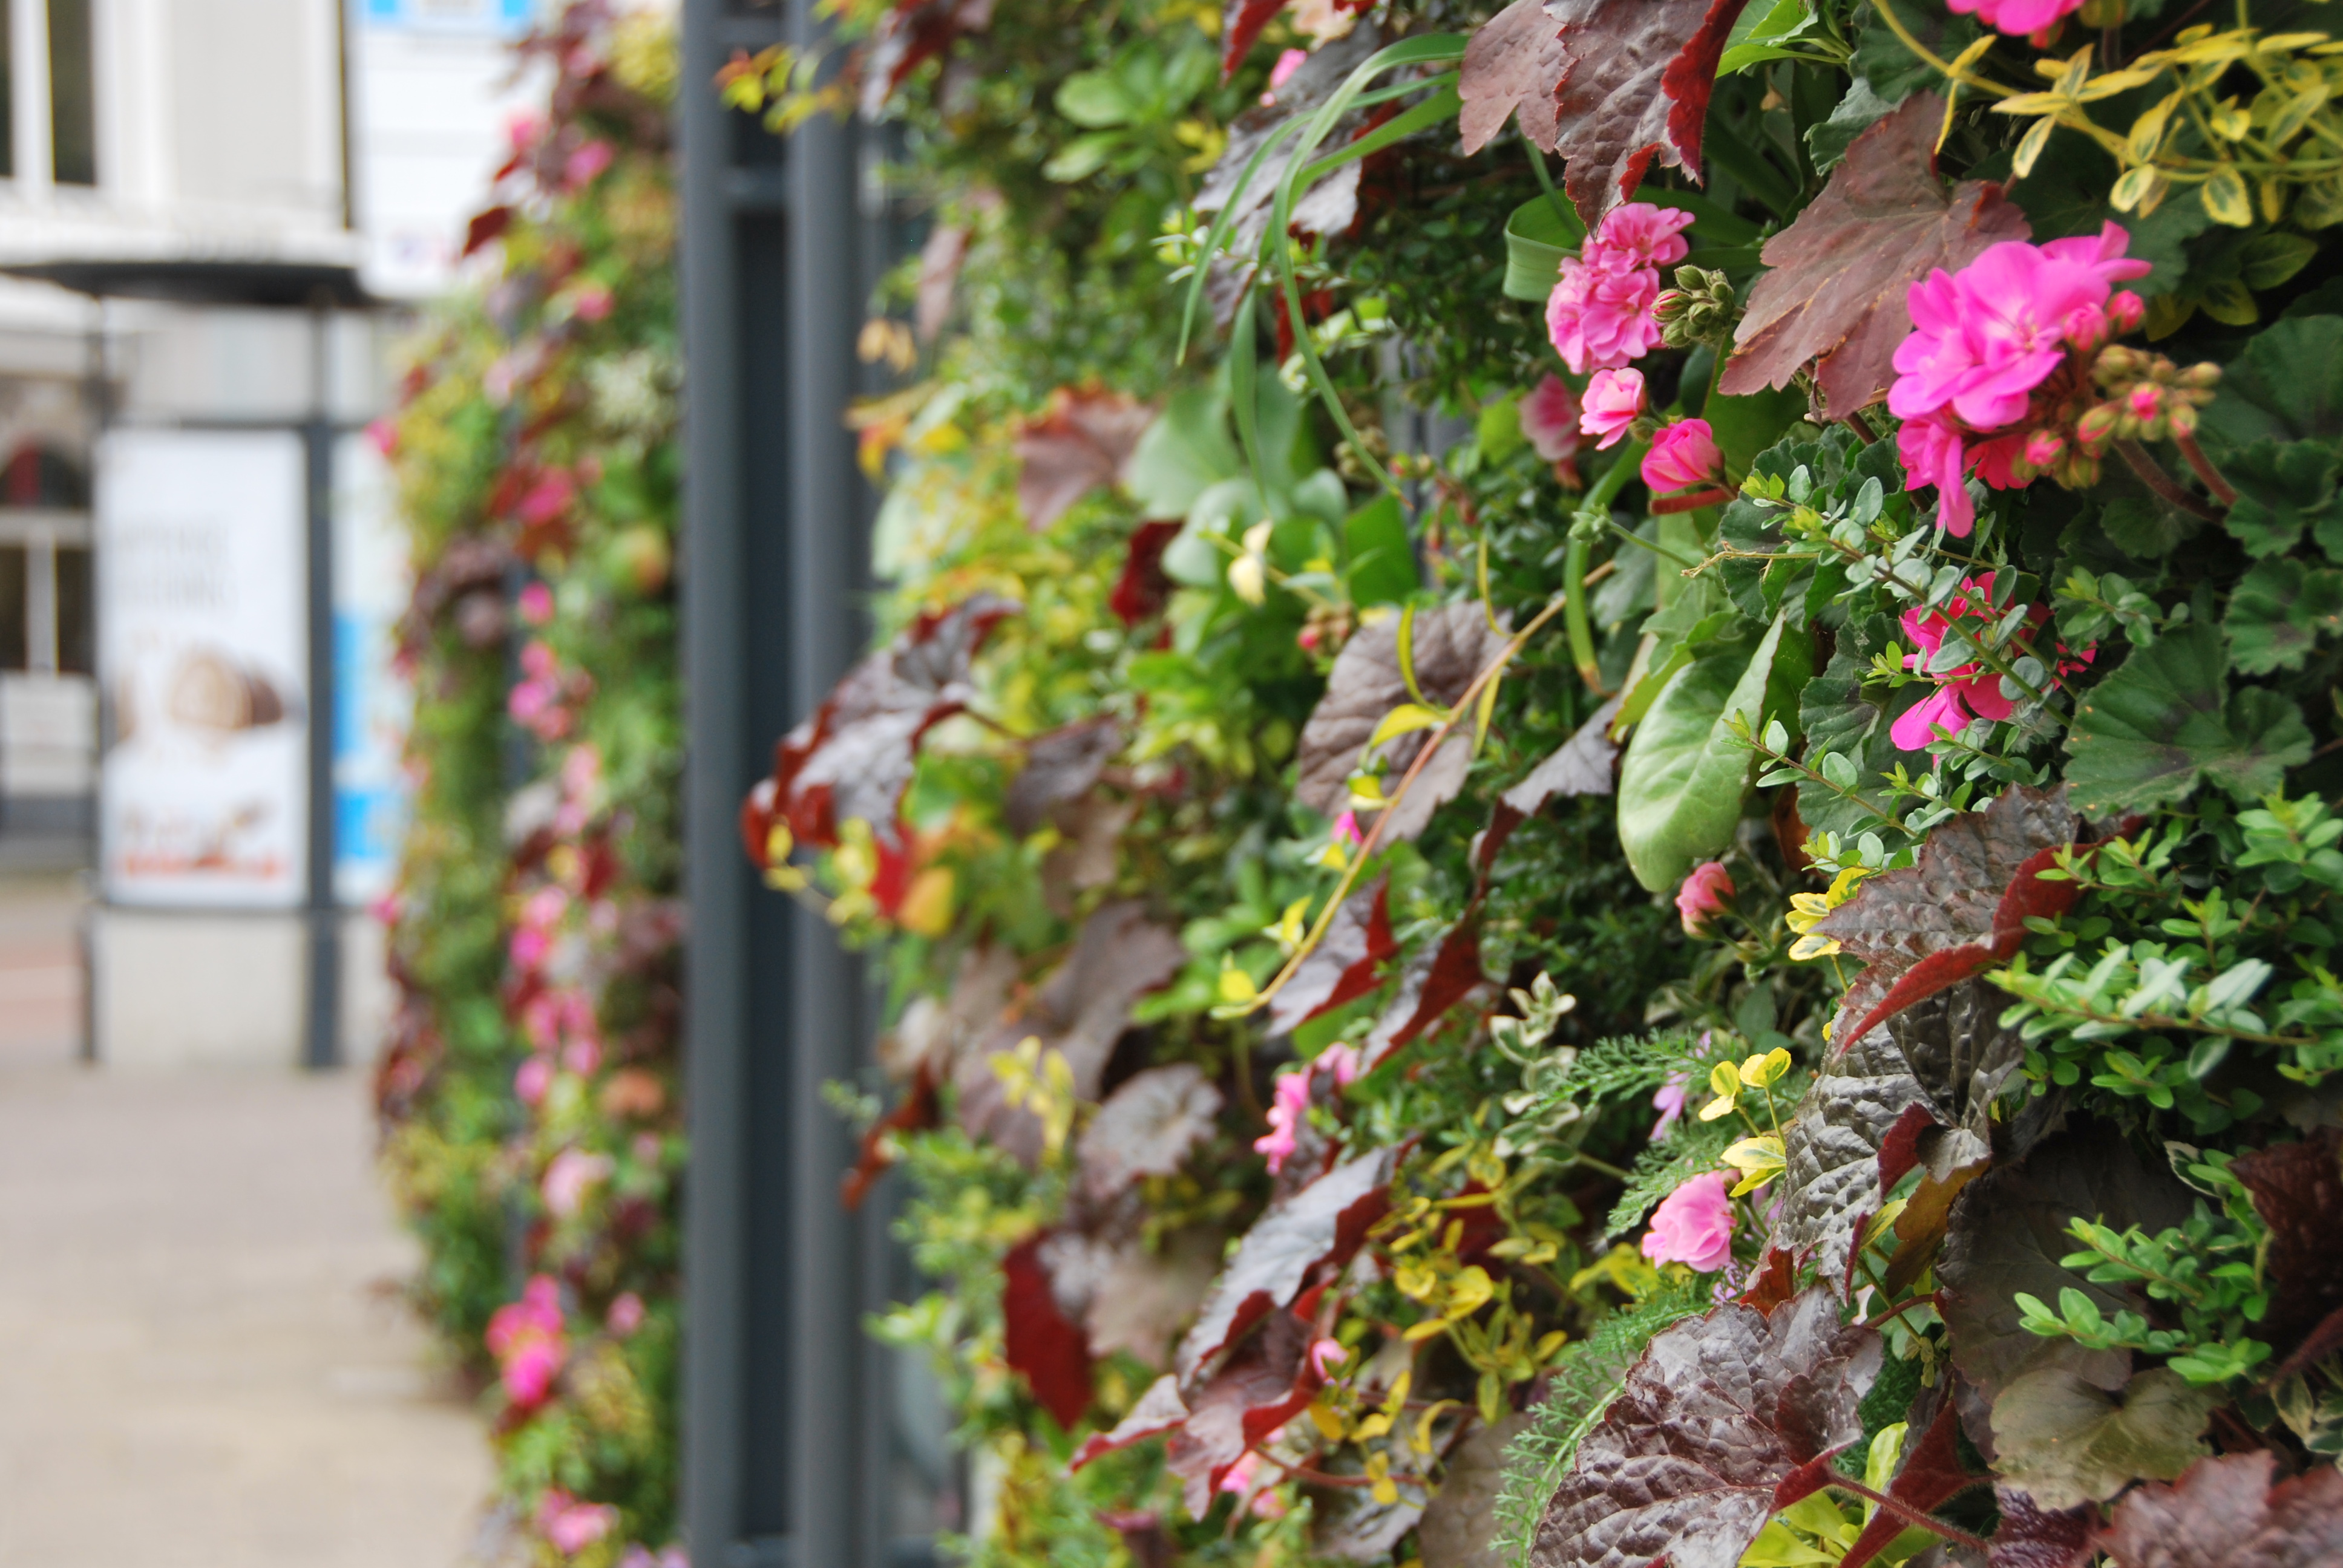 Flowering plants in outdoor SemperGreenwall